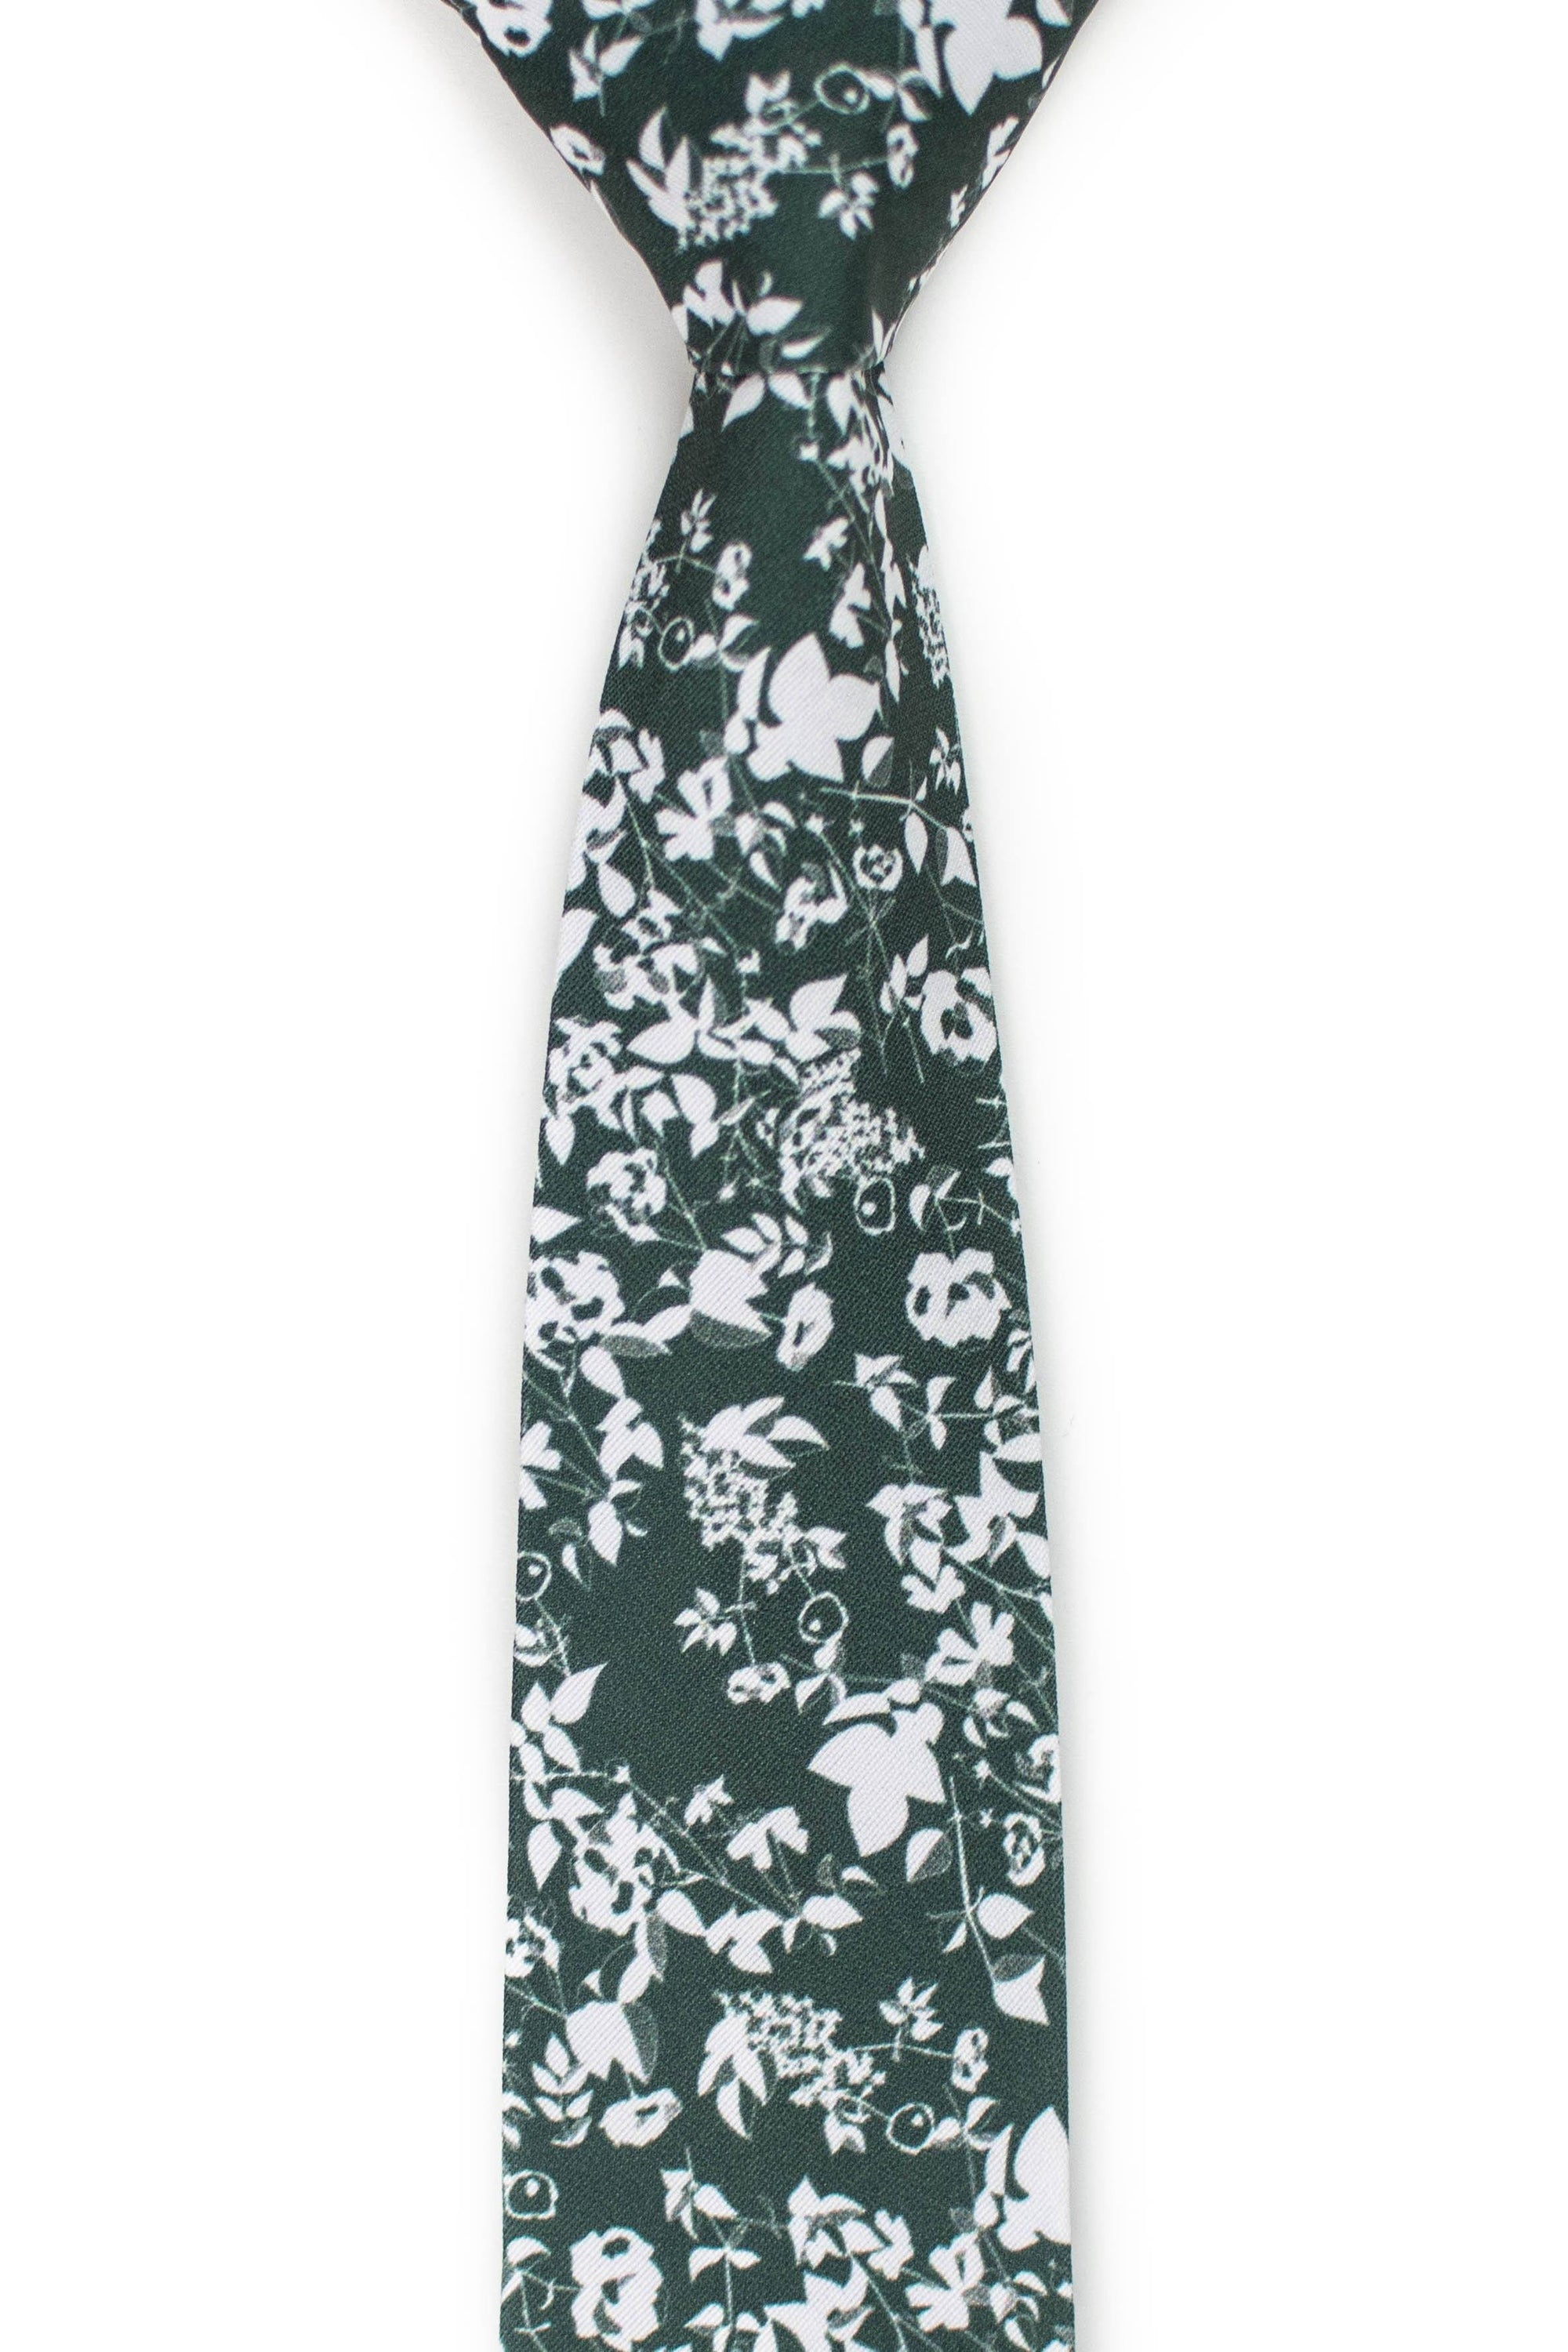 Floral forest green tie front view